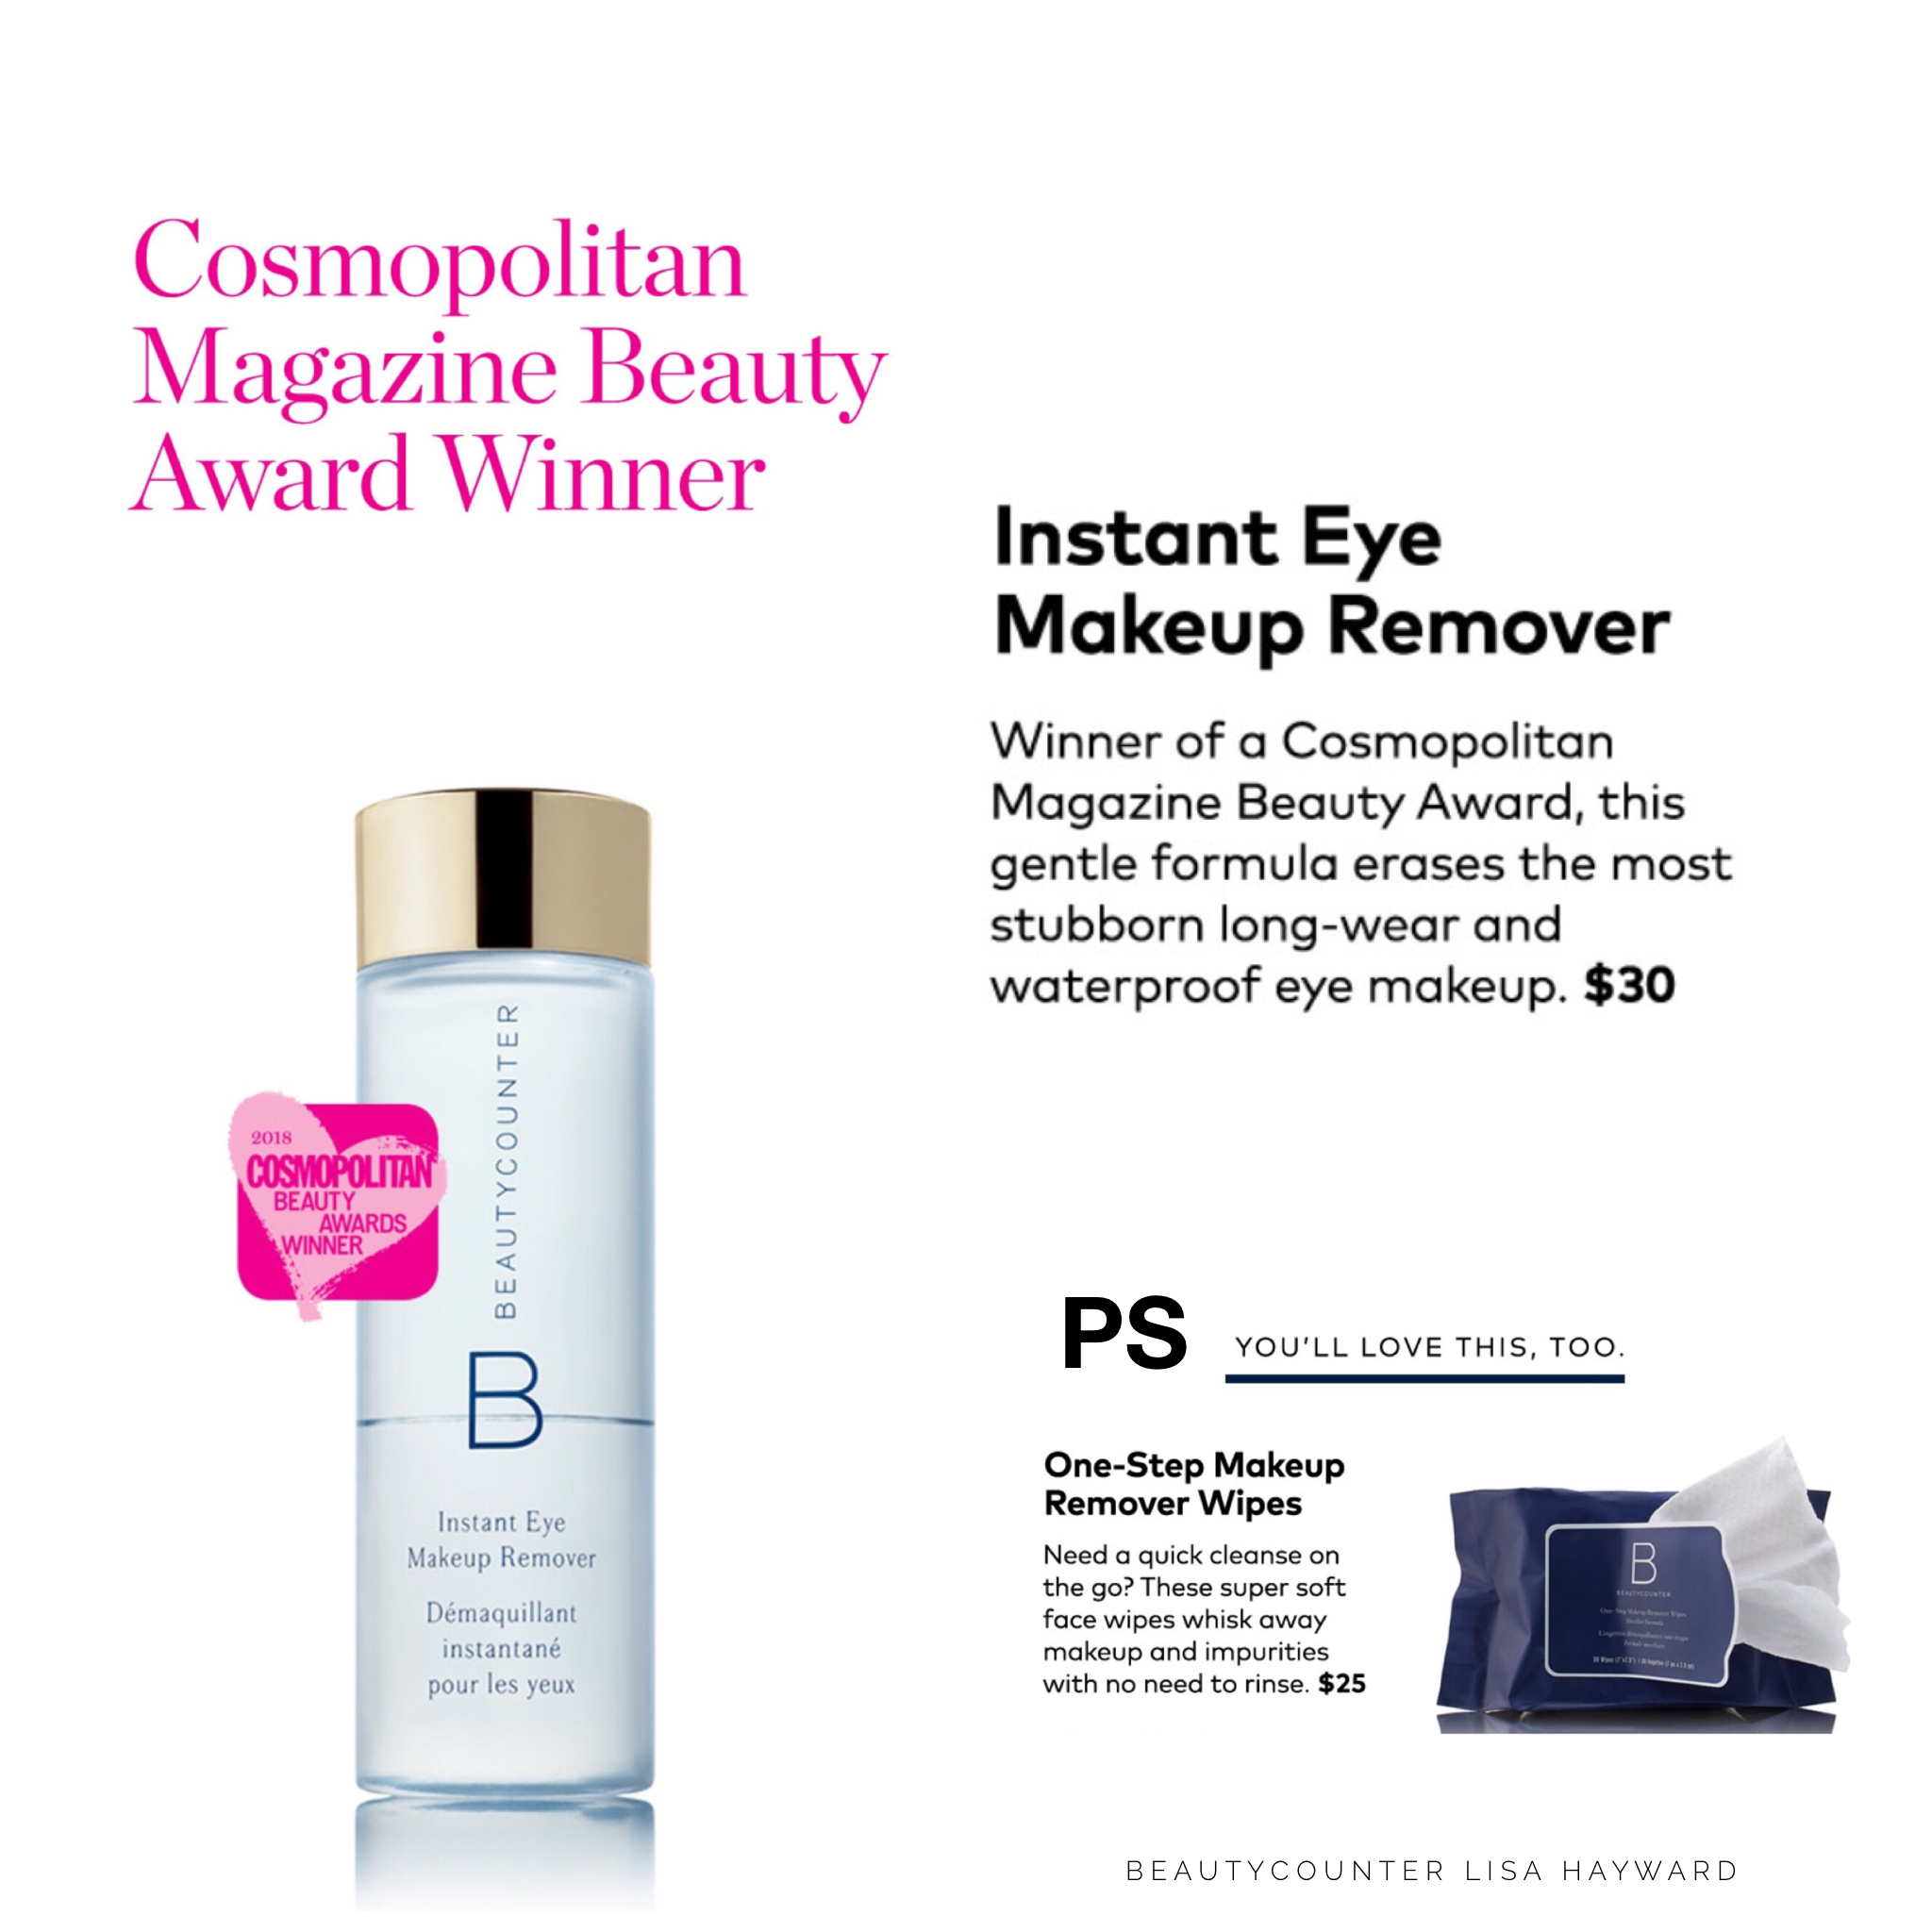 Shop Our Cosmopolitan Magazine Beauty Award Winner And Erase Your Most Stubborn Waterproof Mascara With The Saf Eye Makeup Remover Makeup Remover Beautycounter